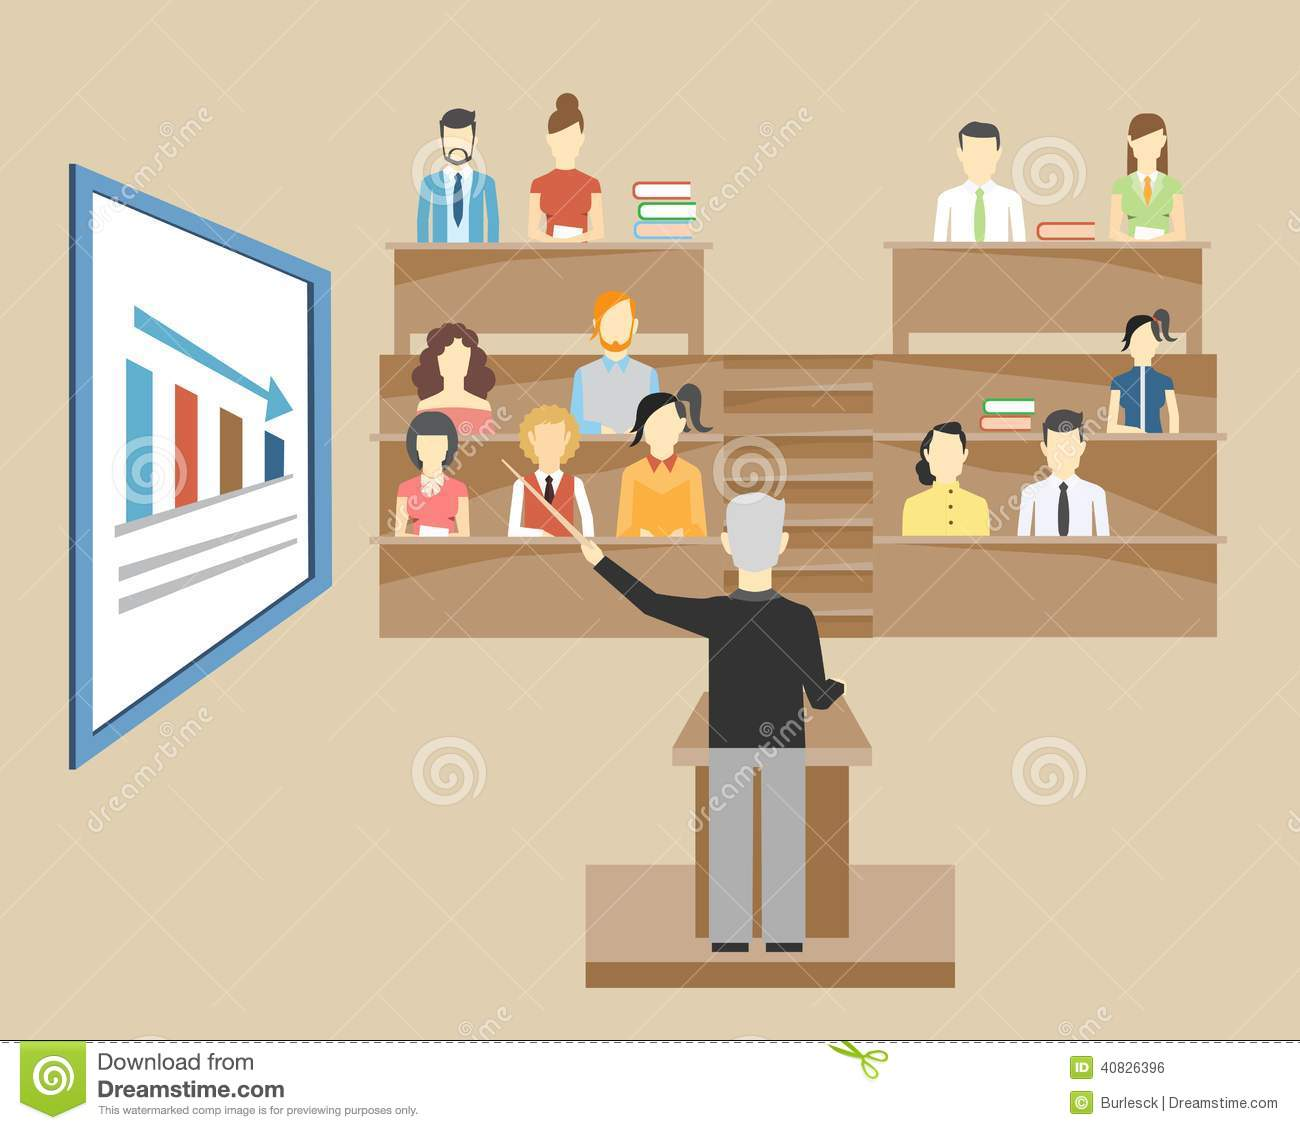 A Vector Illustration Of College Students In Classroom Royalty Free Cliparts,  Vectors, And Stock Illustration. Image 109077325.